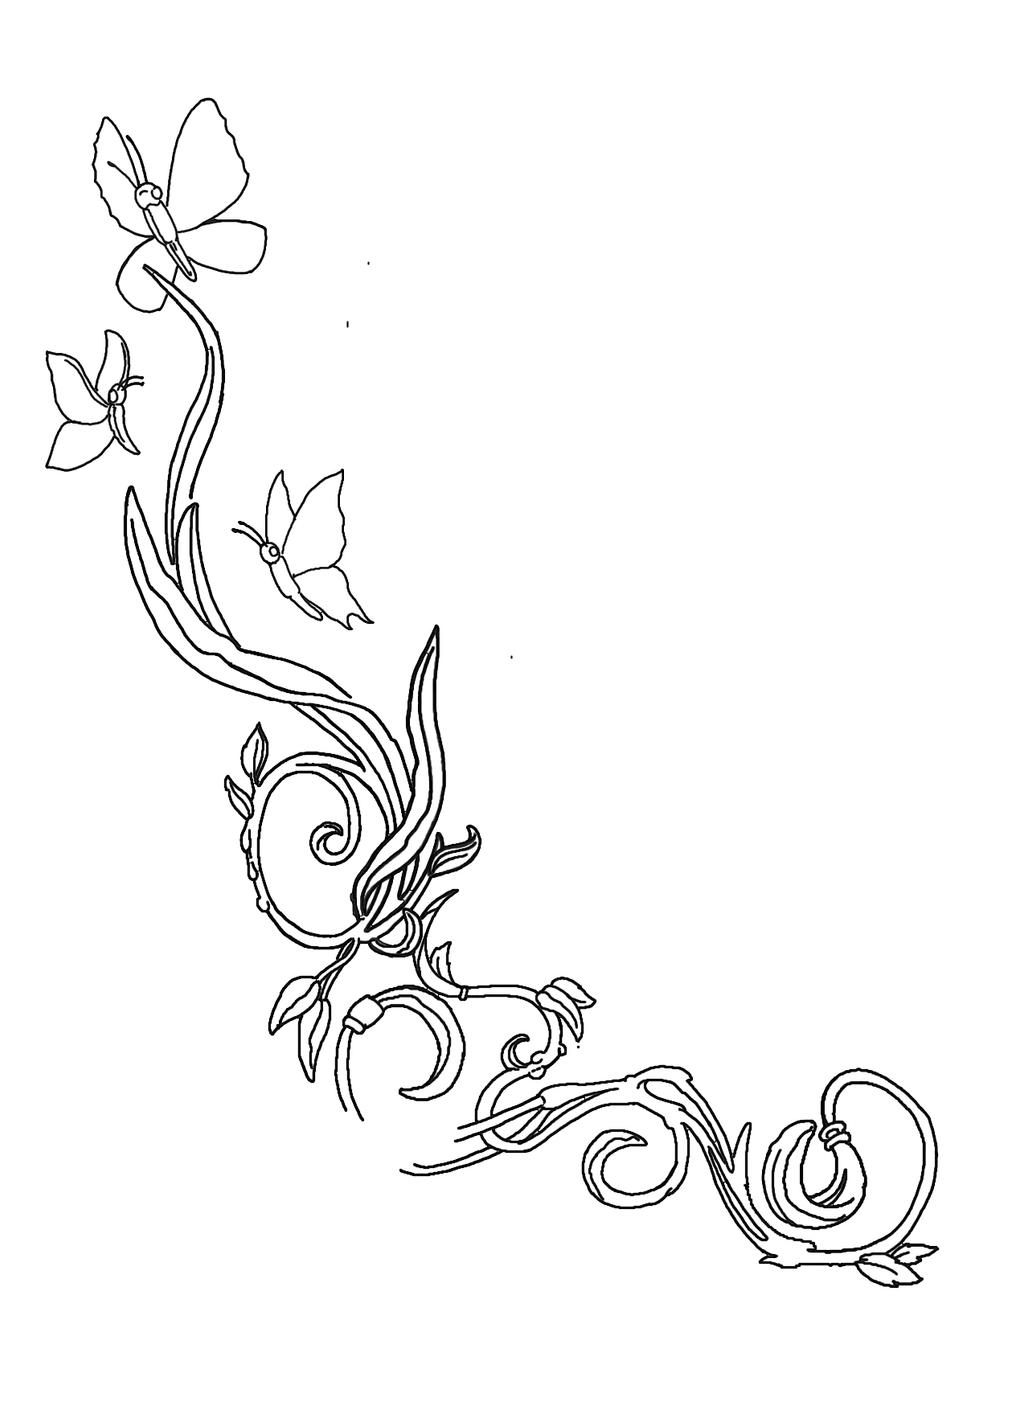 Ankle Flower Tattoo Sketches By Posvibes On Deviantart